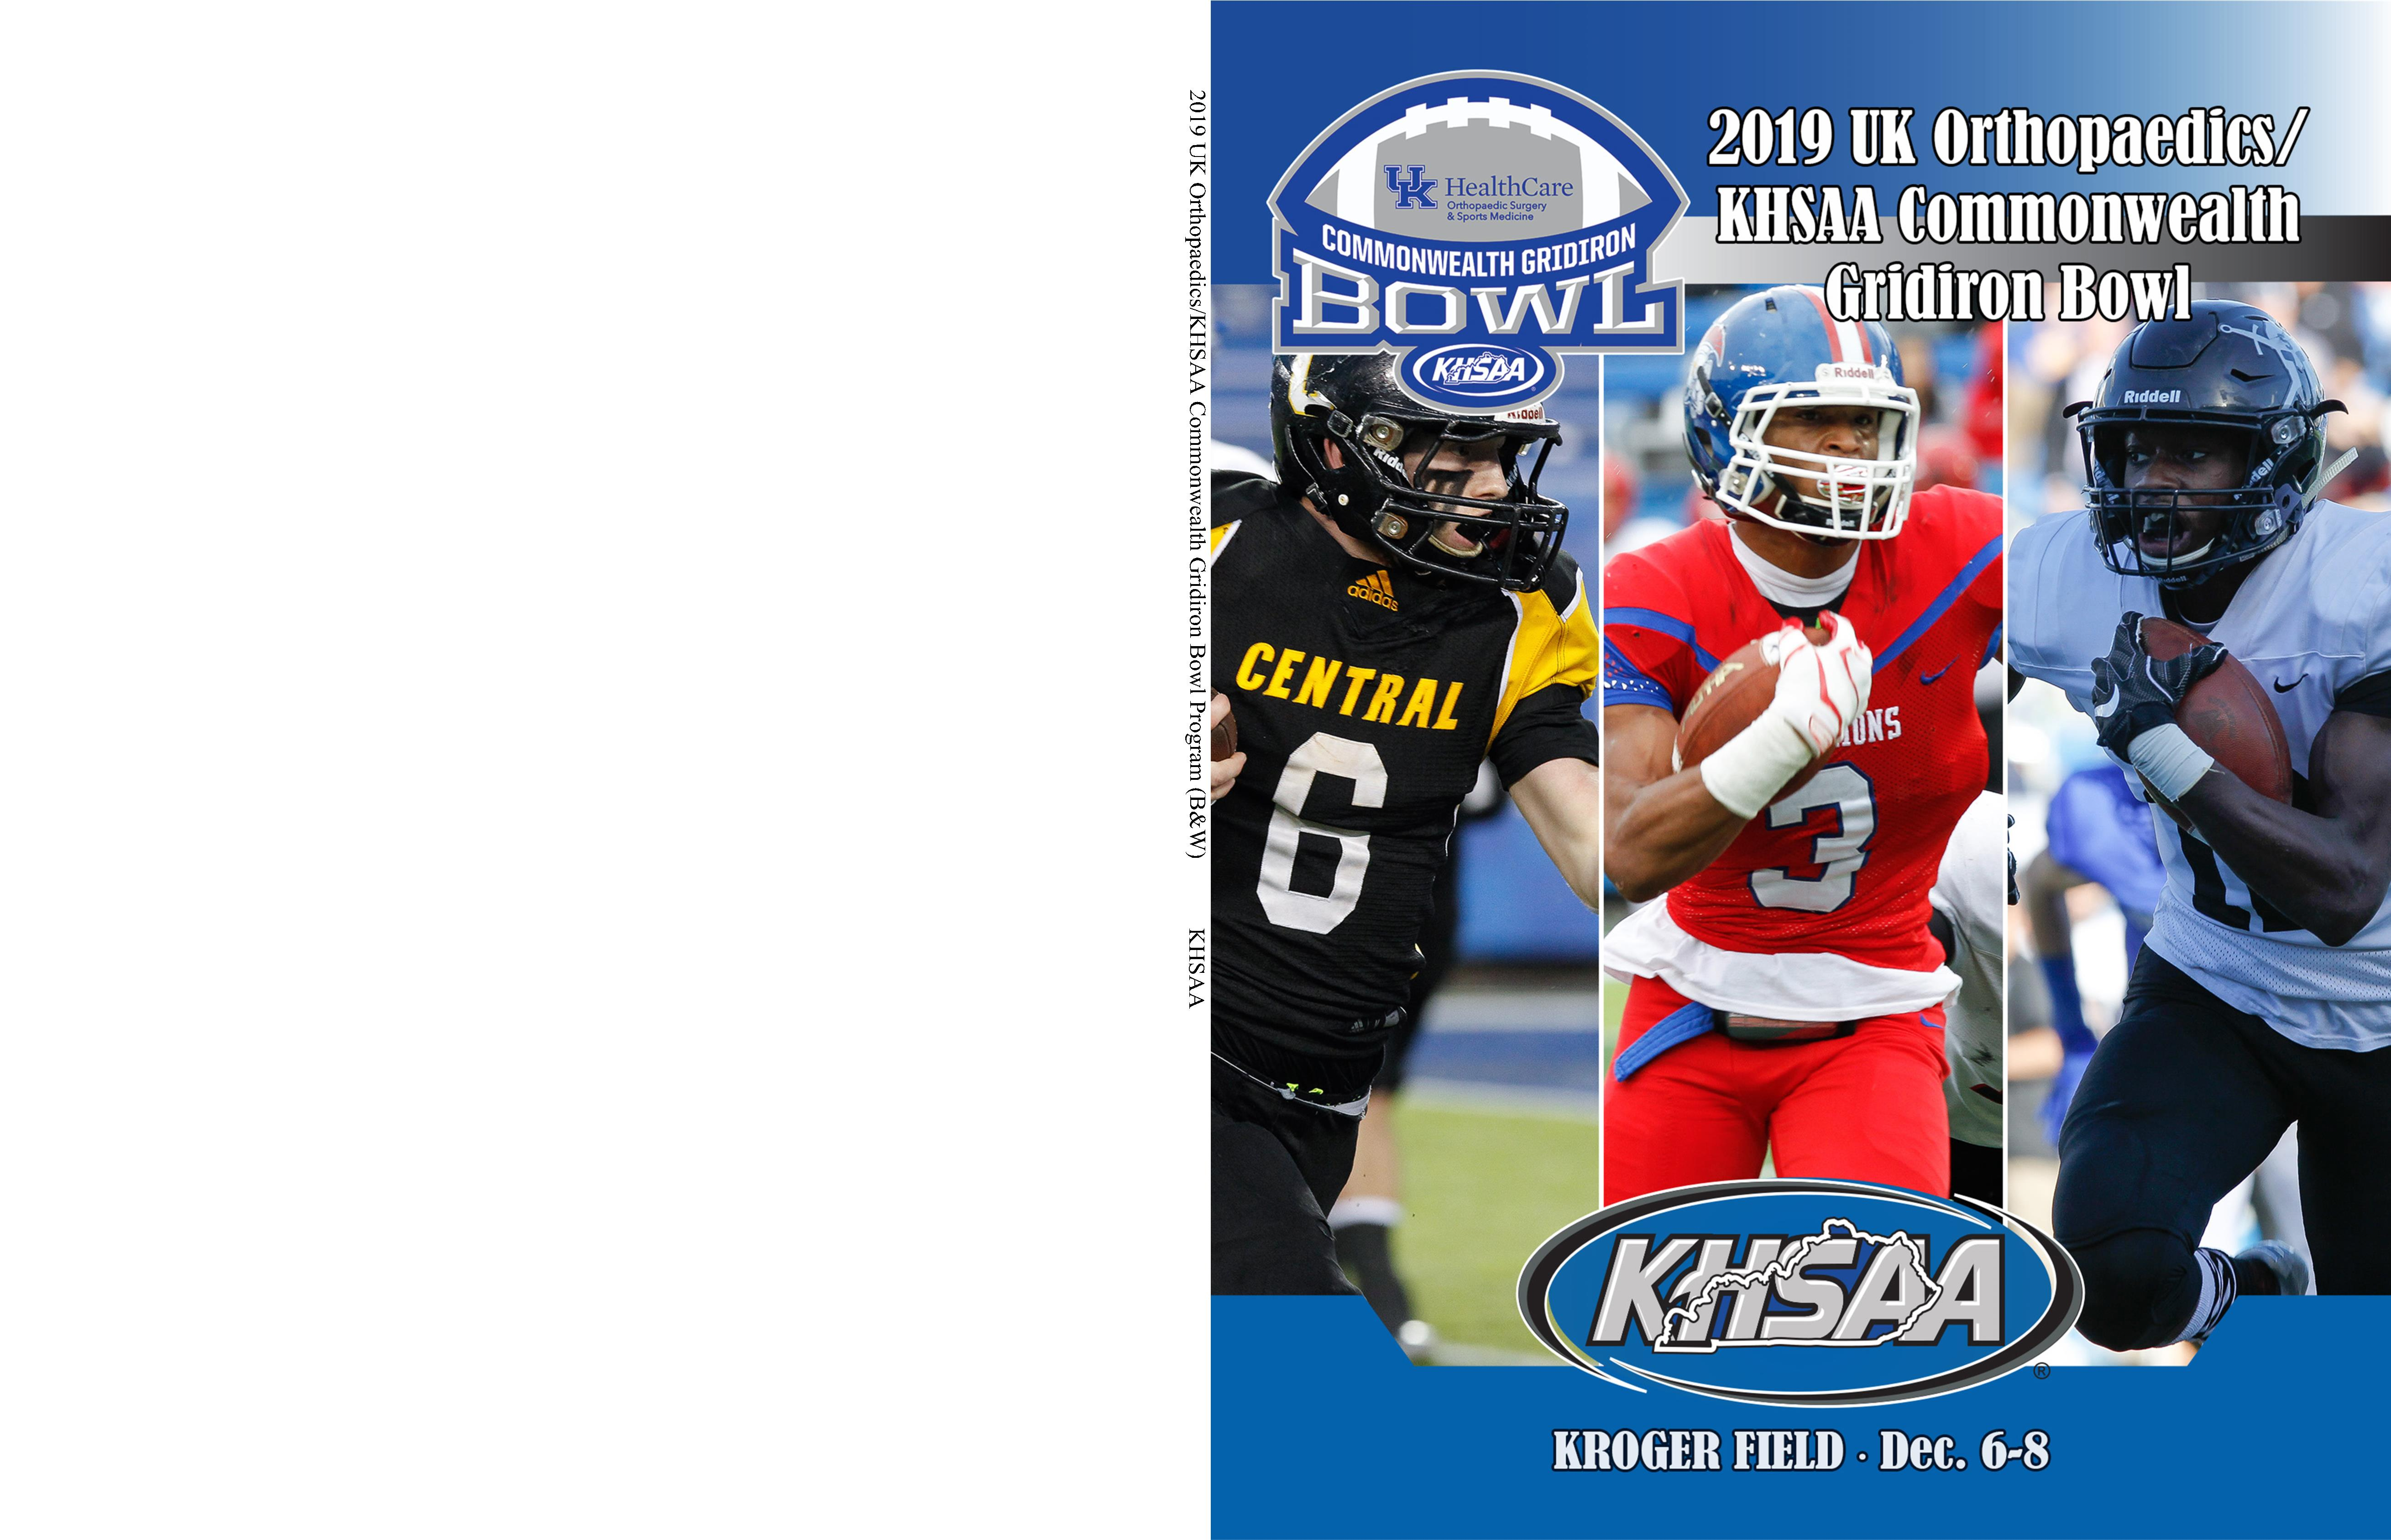 2019 UK Orthopaedics/KHSAA Commonwealth Gridiron Bowl Program (B&W) cover image